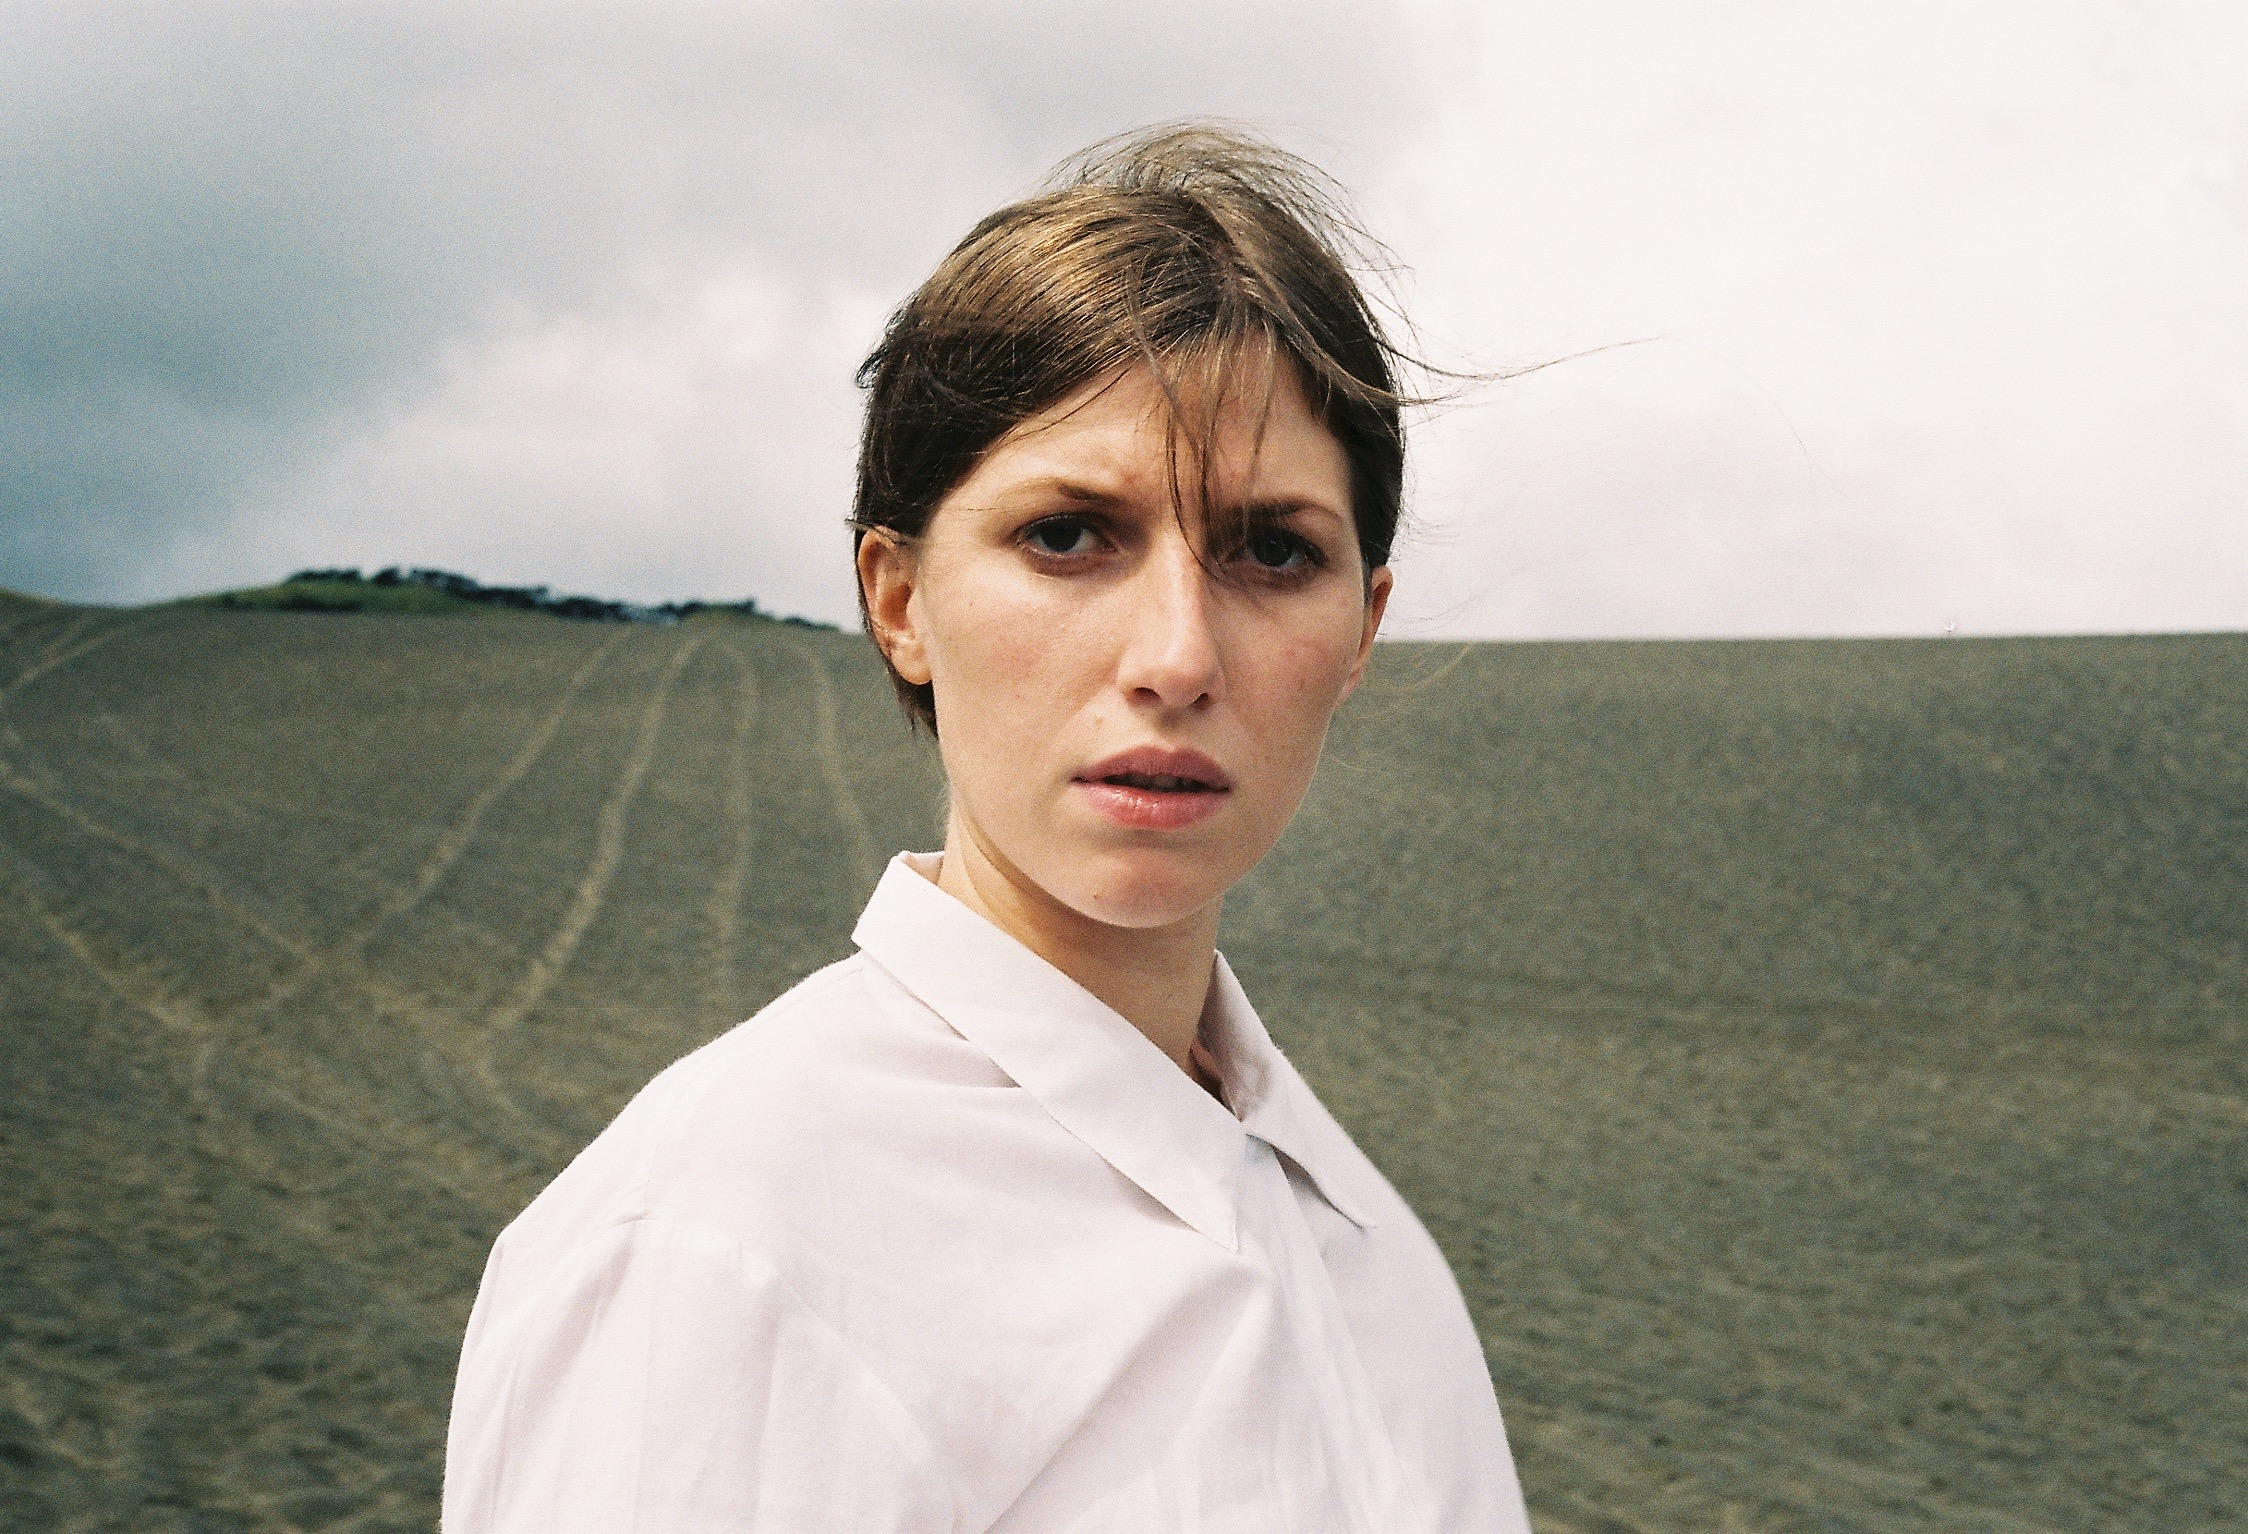 Aldous Harding by Harriet Were